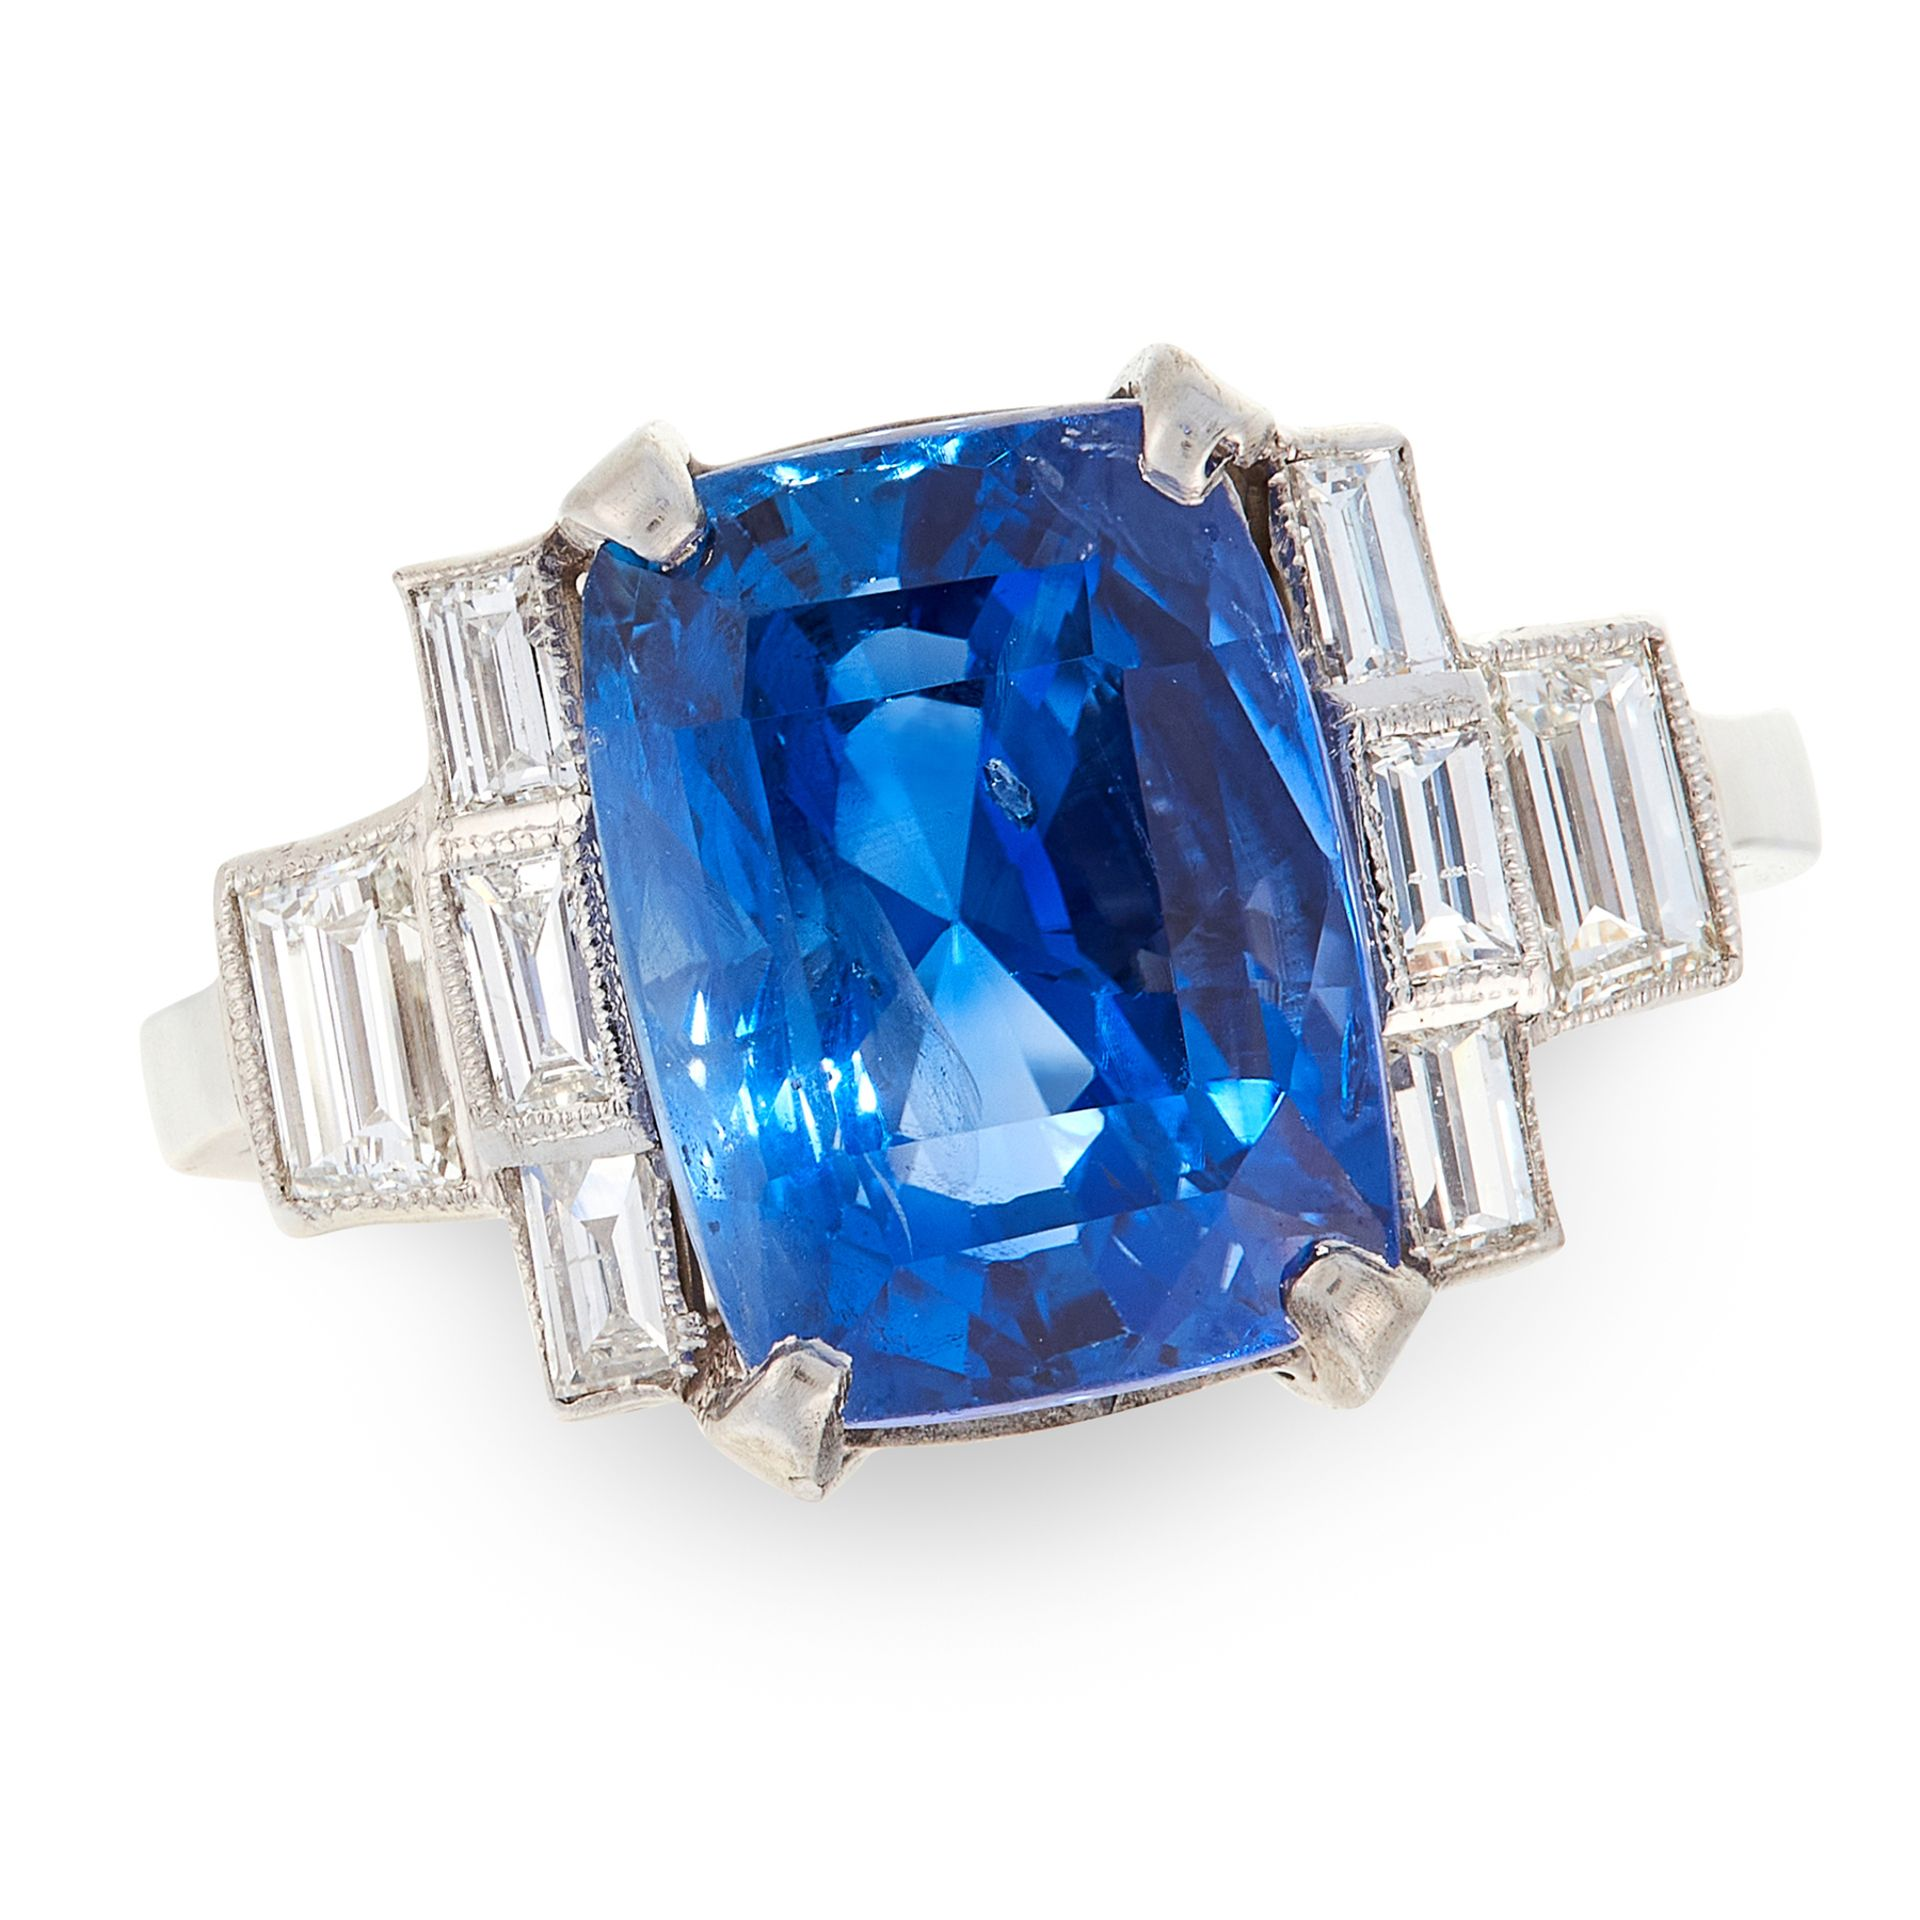 AN UNHEATED SAPPHIRE AND DIAMOND RING in platinum, set with a cushion cut sapphire of 8.33 carats in